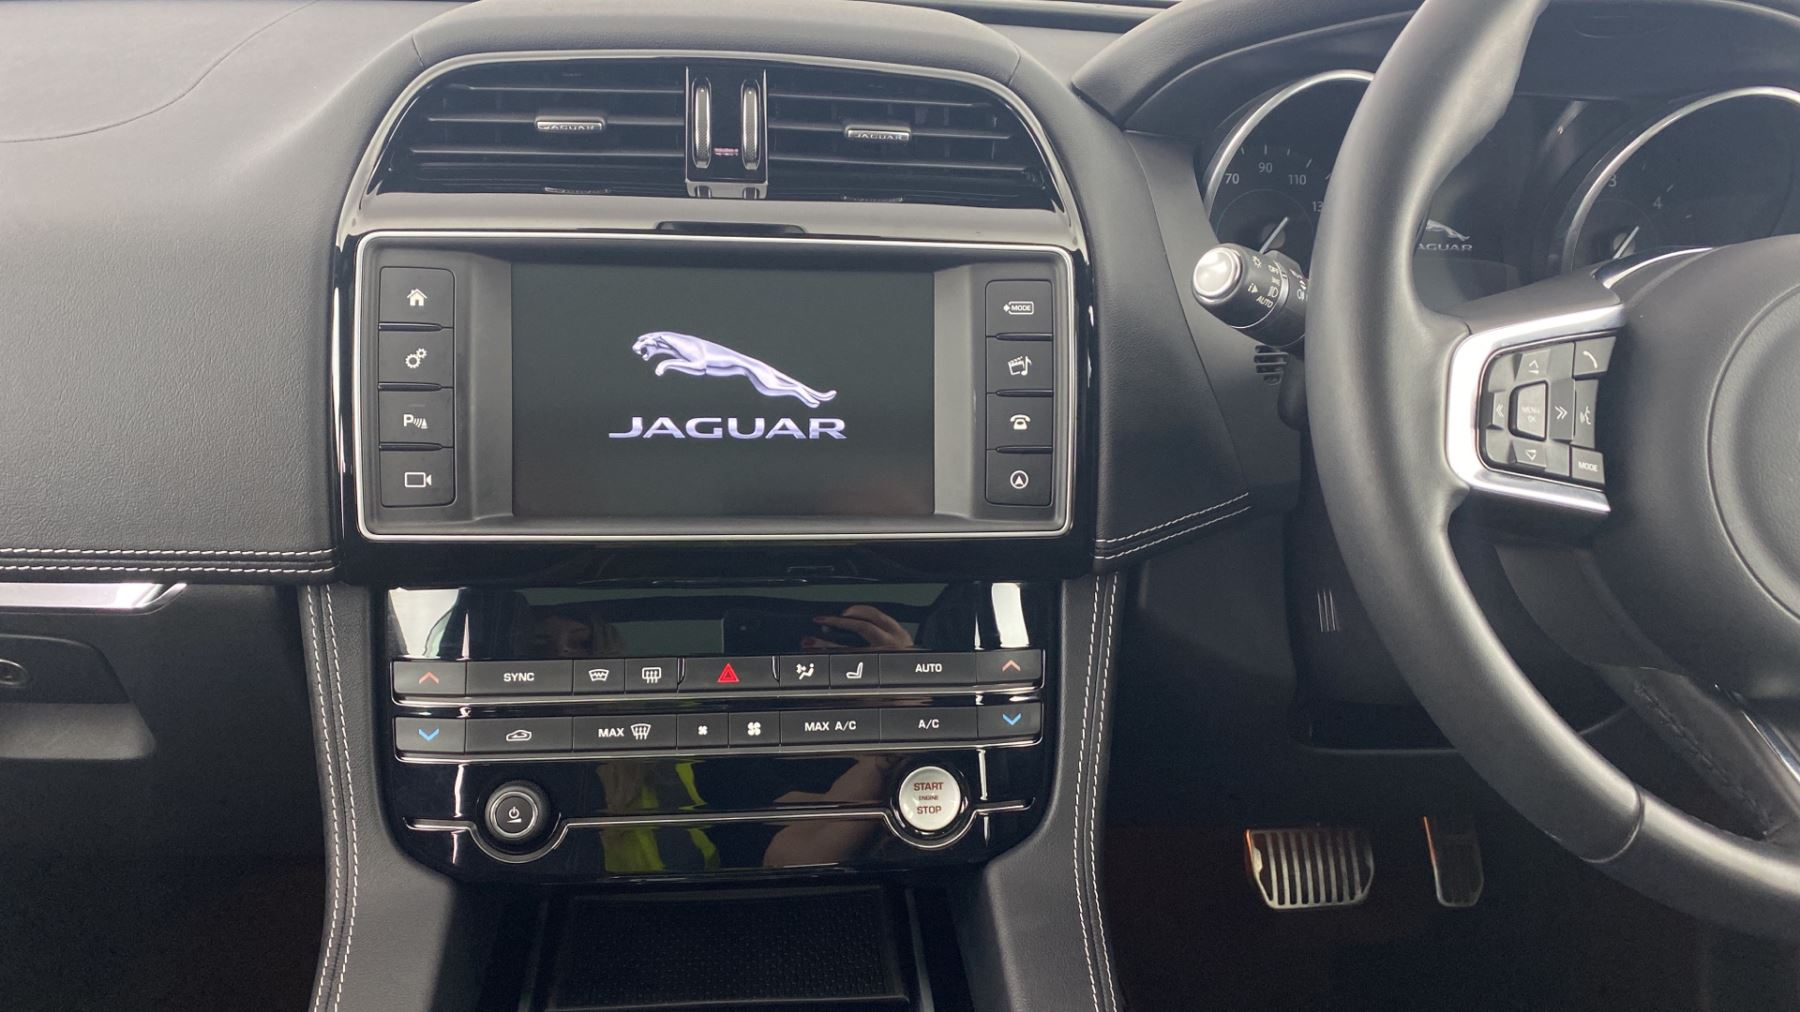 Jaguar F-PACE 2.0d R-Sport AWD - Sliding Panoramic Roof - Rear View Camera image 12